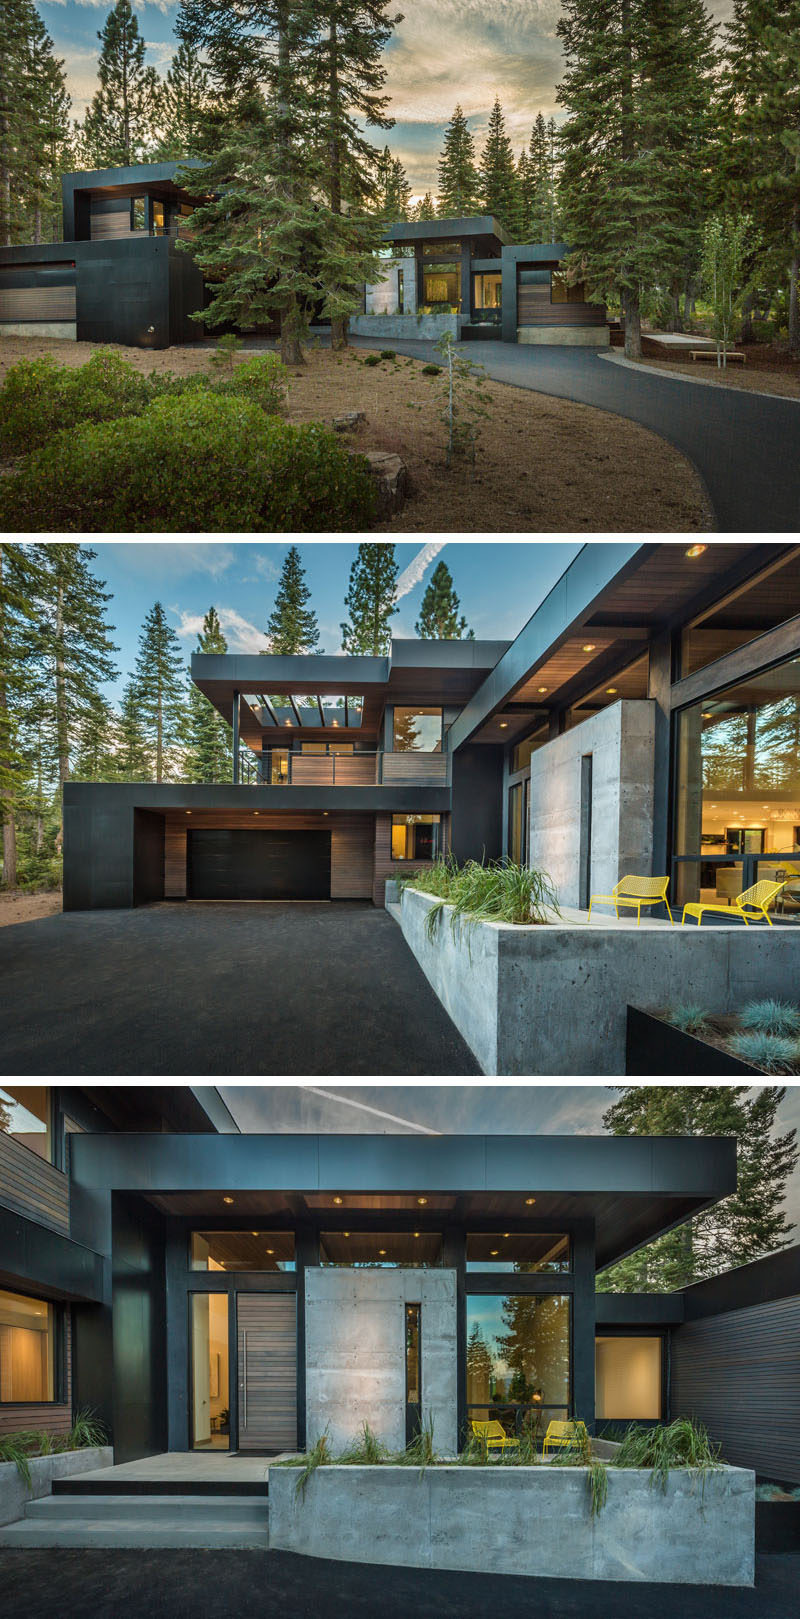 The Best Mansion Ever Awesome 18 Modern Houses In the forest